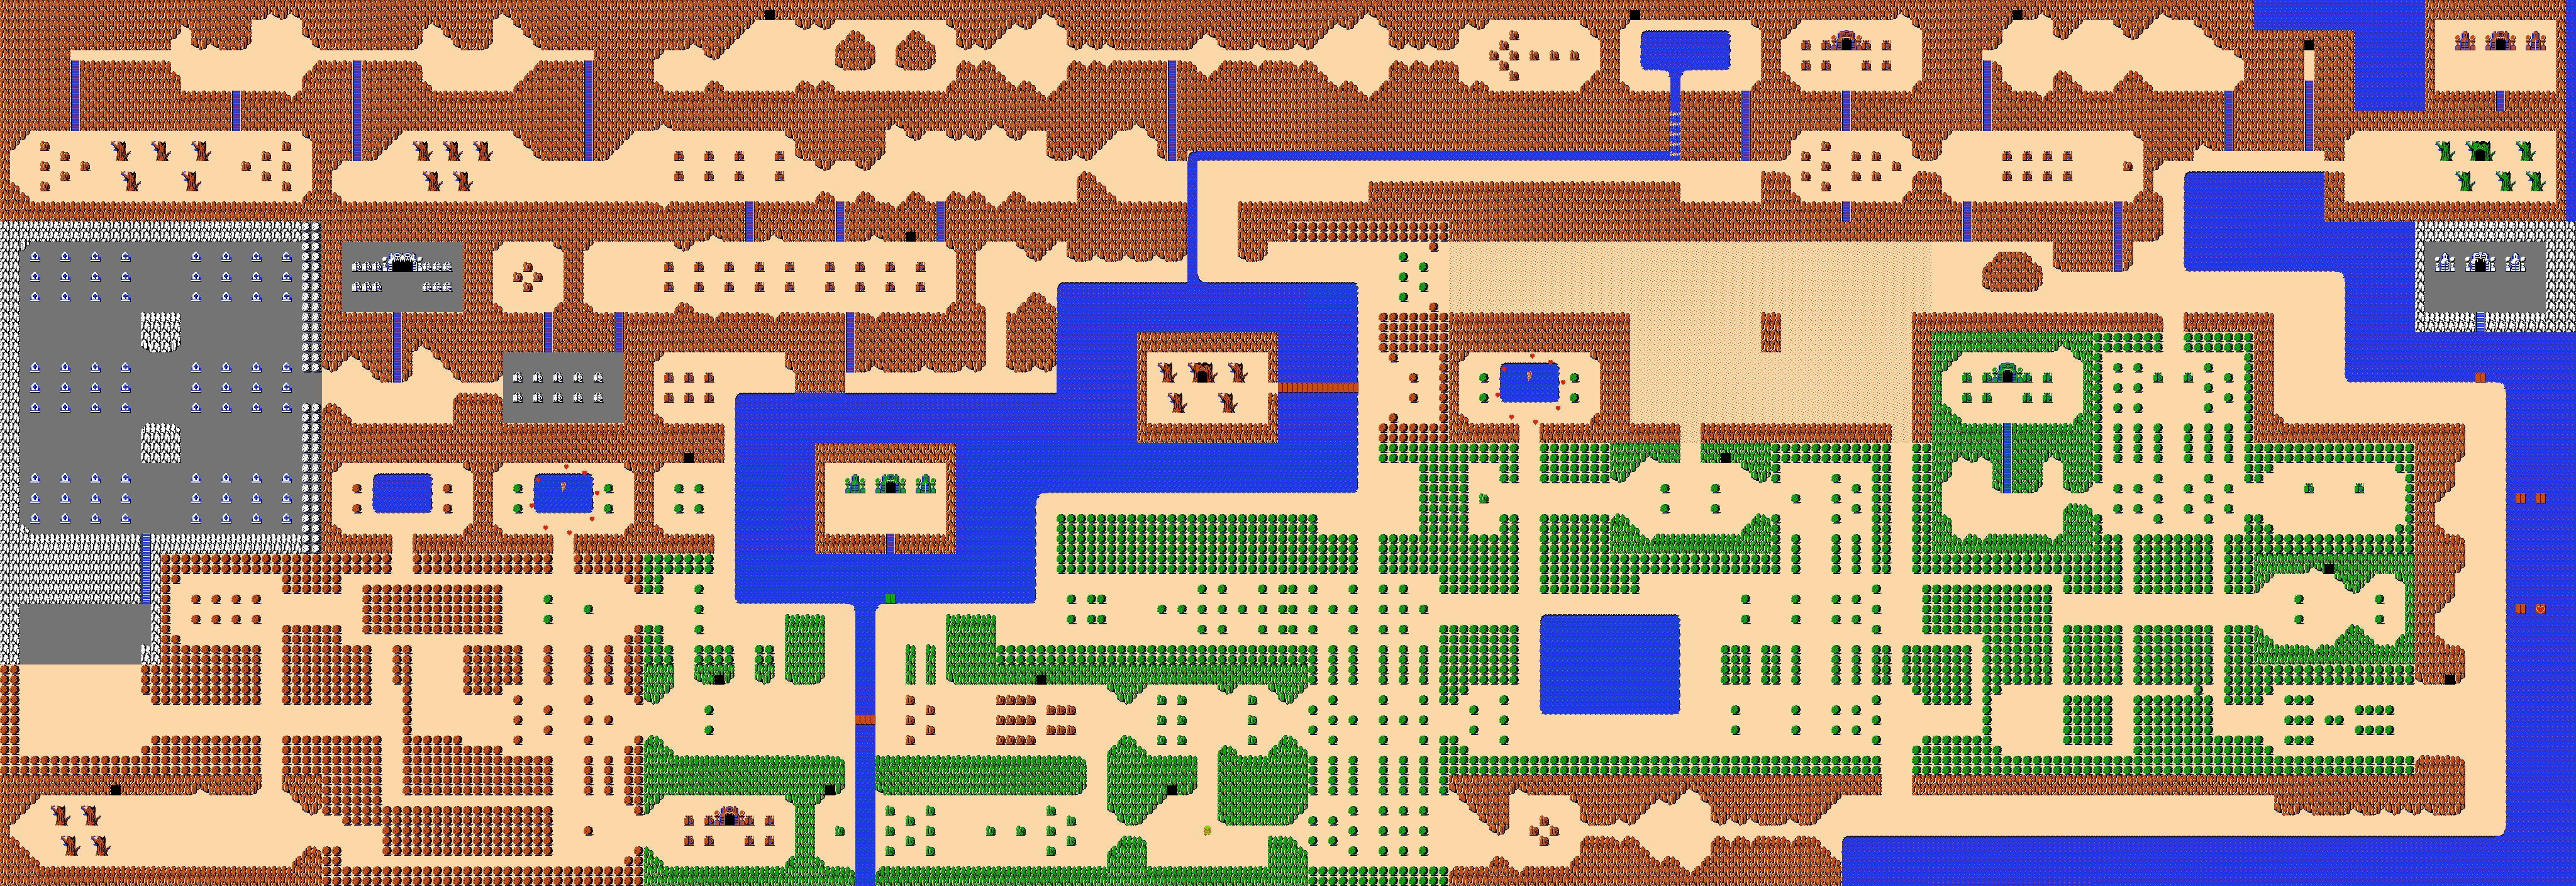 Printable Map Legend Of Zelda Elegant Nintendo S Design Documents From The Legend Of Zelda